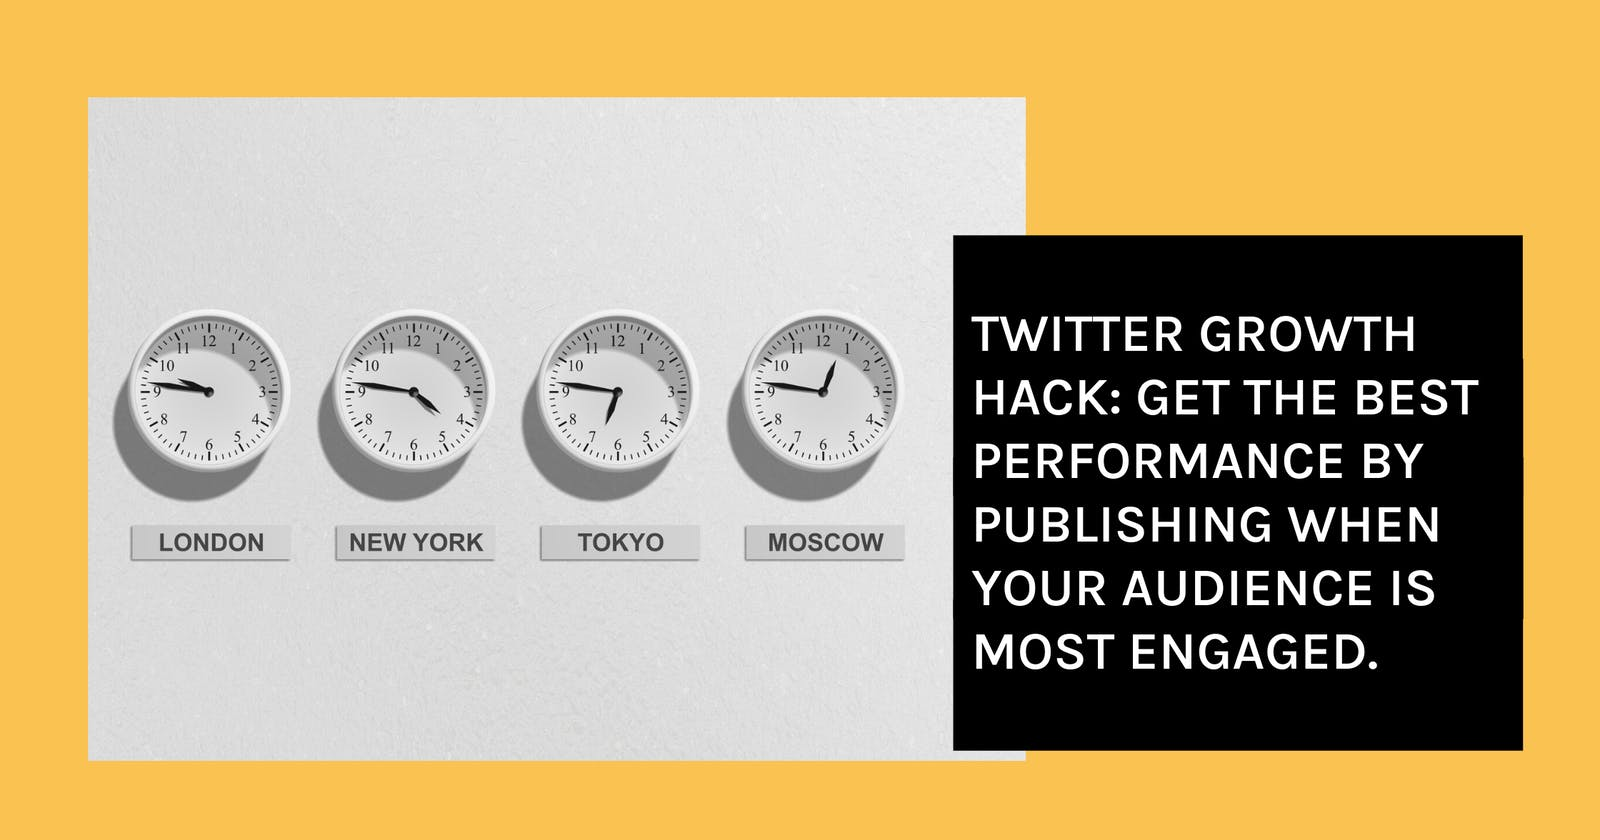 Twitter Growth Hack: Get the best performance by publishing when your audience is most engaged.